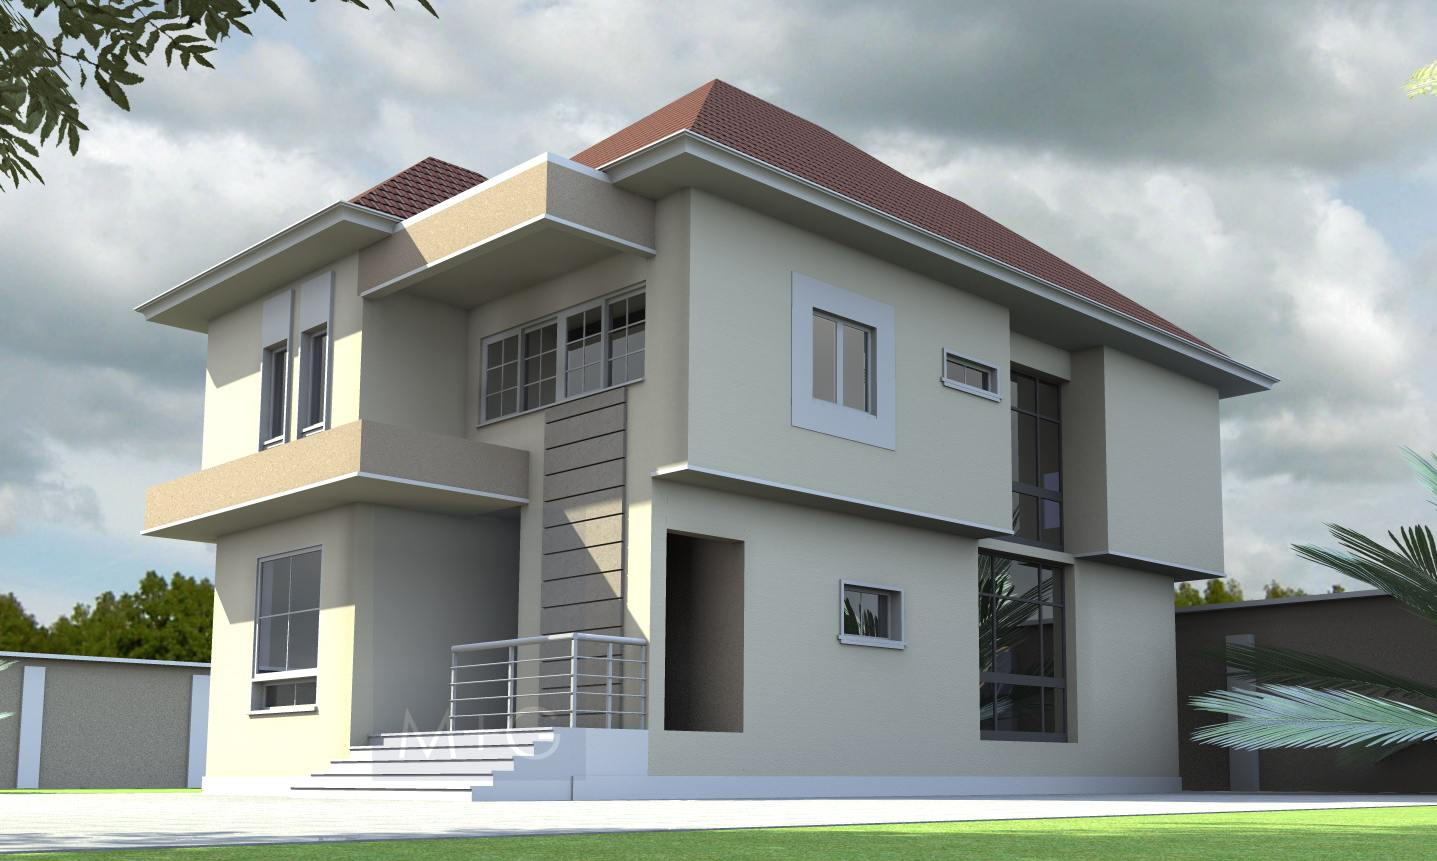 Stylish two bedroom duplex spreading design ideas for house for Modern duplex house plans in nigeria